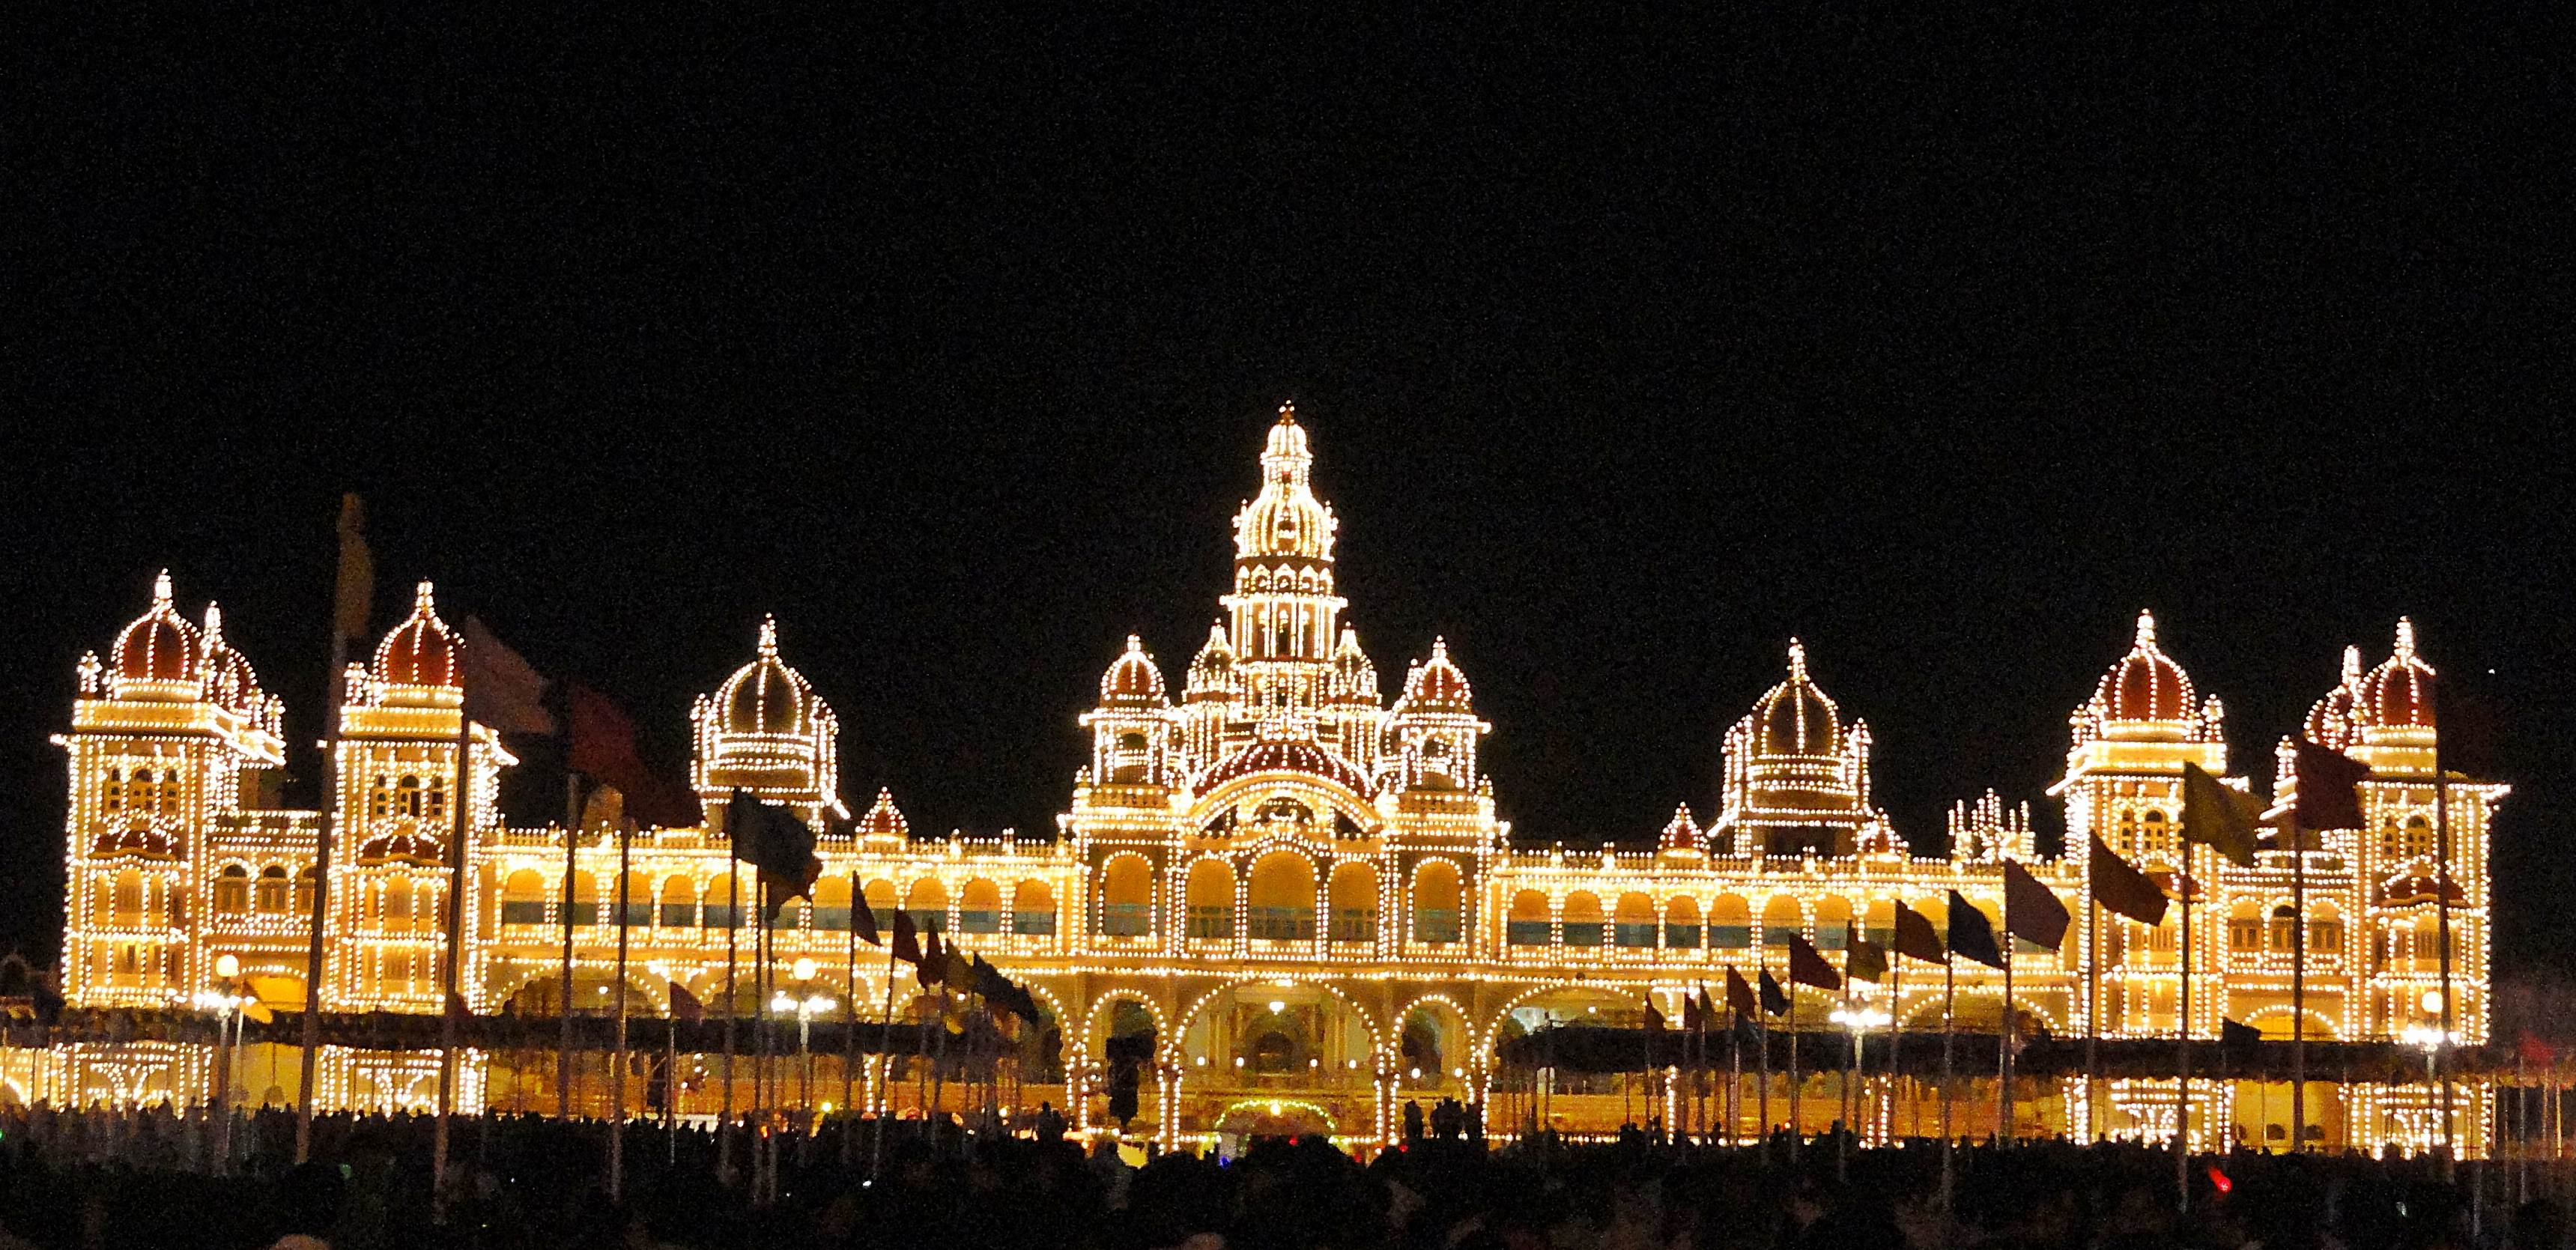 Palace Wallpaper Hd An Evening At Mysore Images Worthview